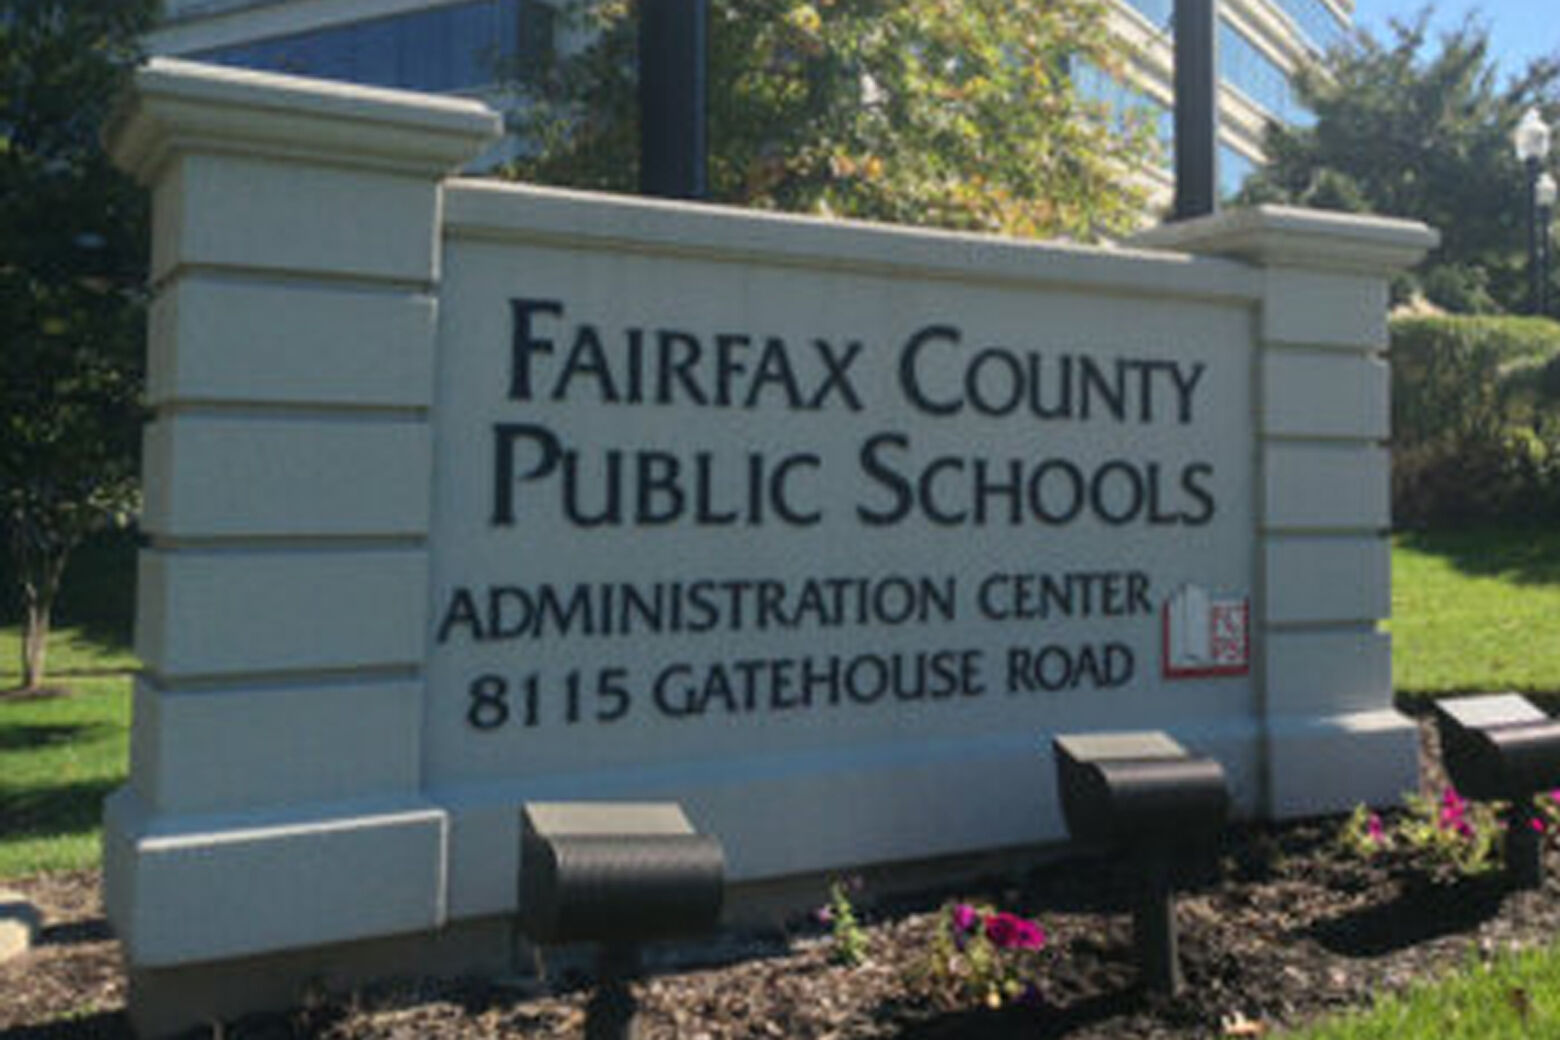 Fairfax County schools pulls 2 books with graphic sex from libraries